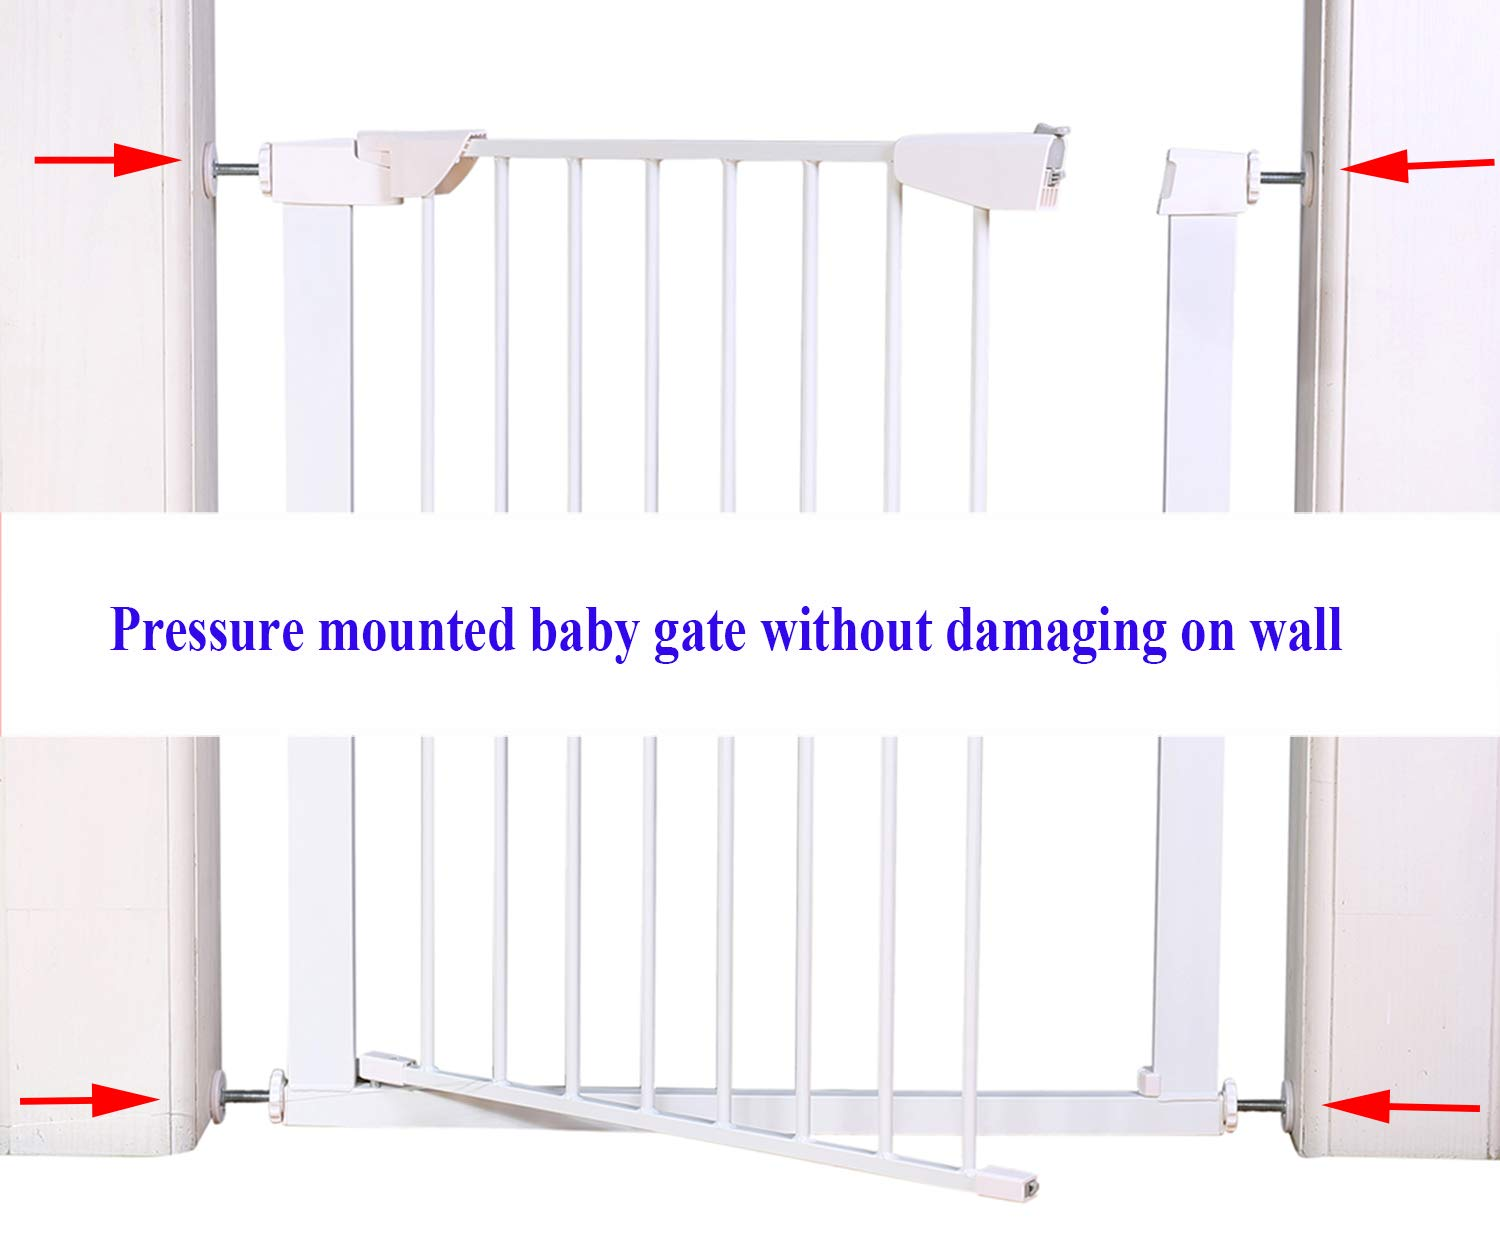 ALLAIBB Walk Thru Metal Baby Gate Pressure Mount Kit Auto Close Child Safety Gate Size 81.89''-84.65'' (White) by ALLAIBB (Image #5)